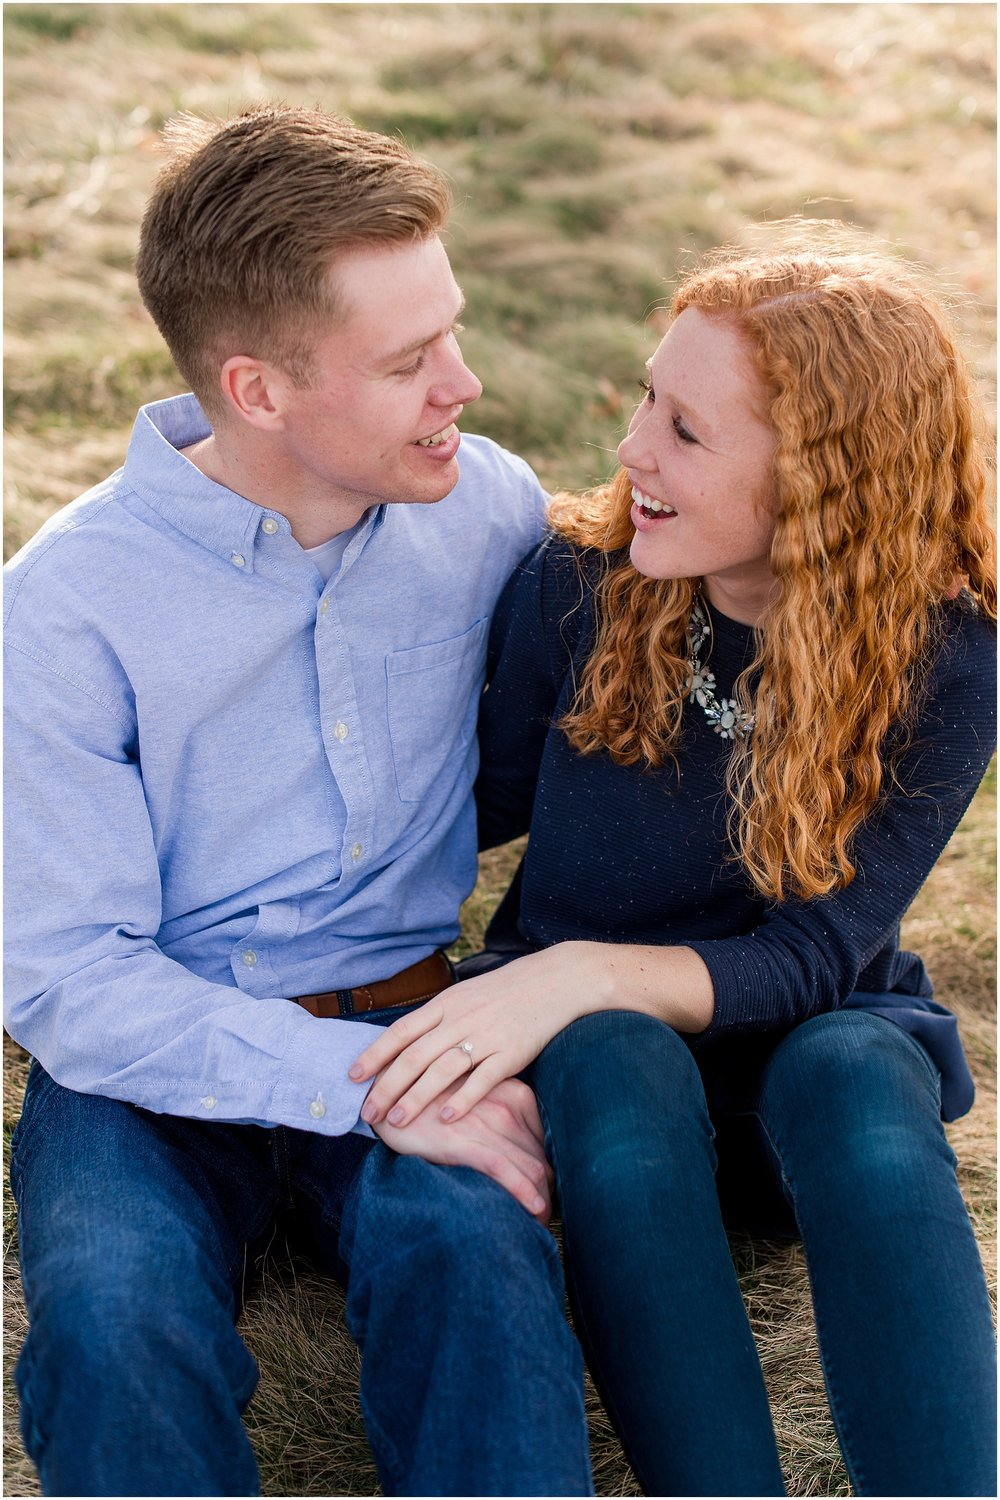 Hannah Leigh Photography State College, PA Engagement Session_3322.jpg